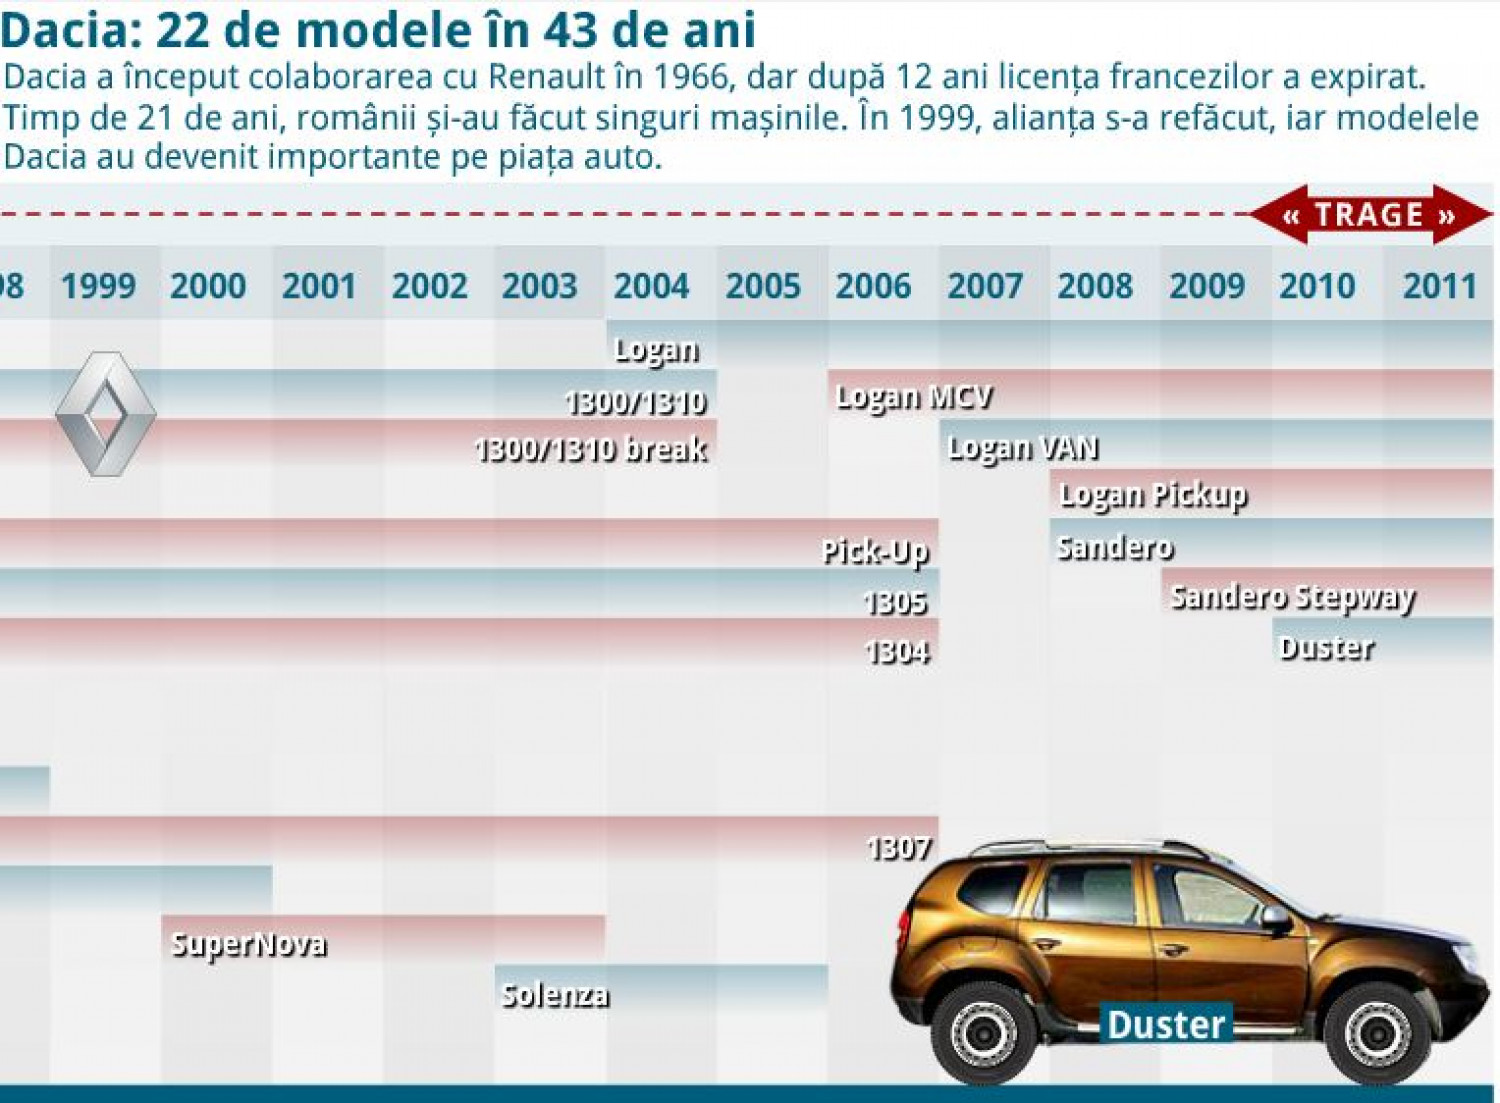 Dacia - the history of a car: 22 models in 43 years Infographic